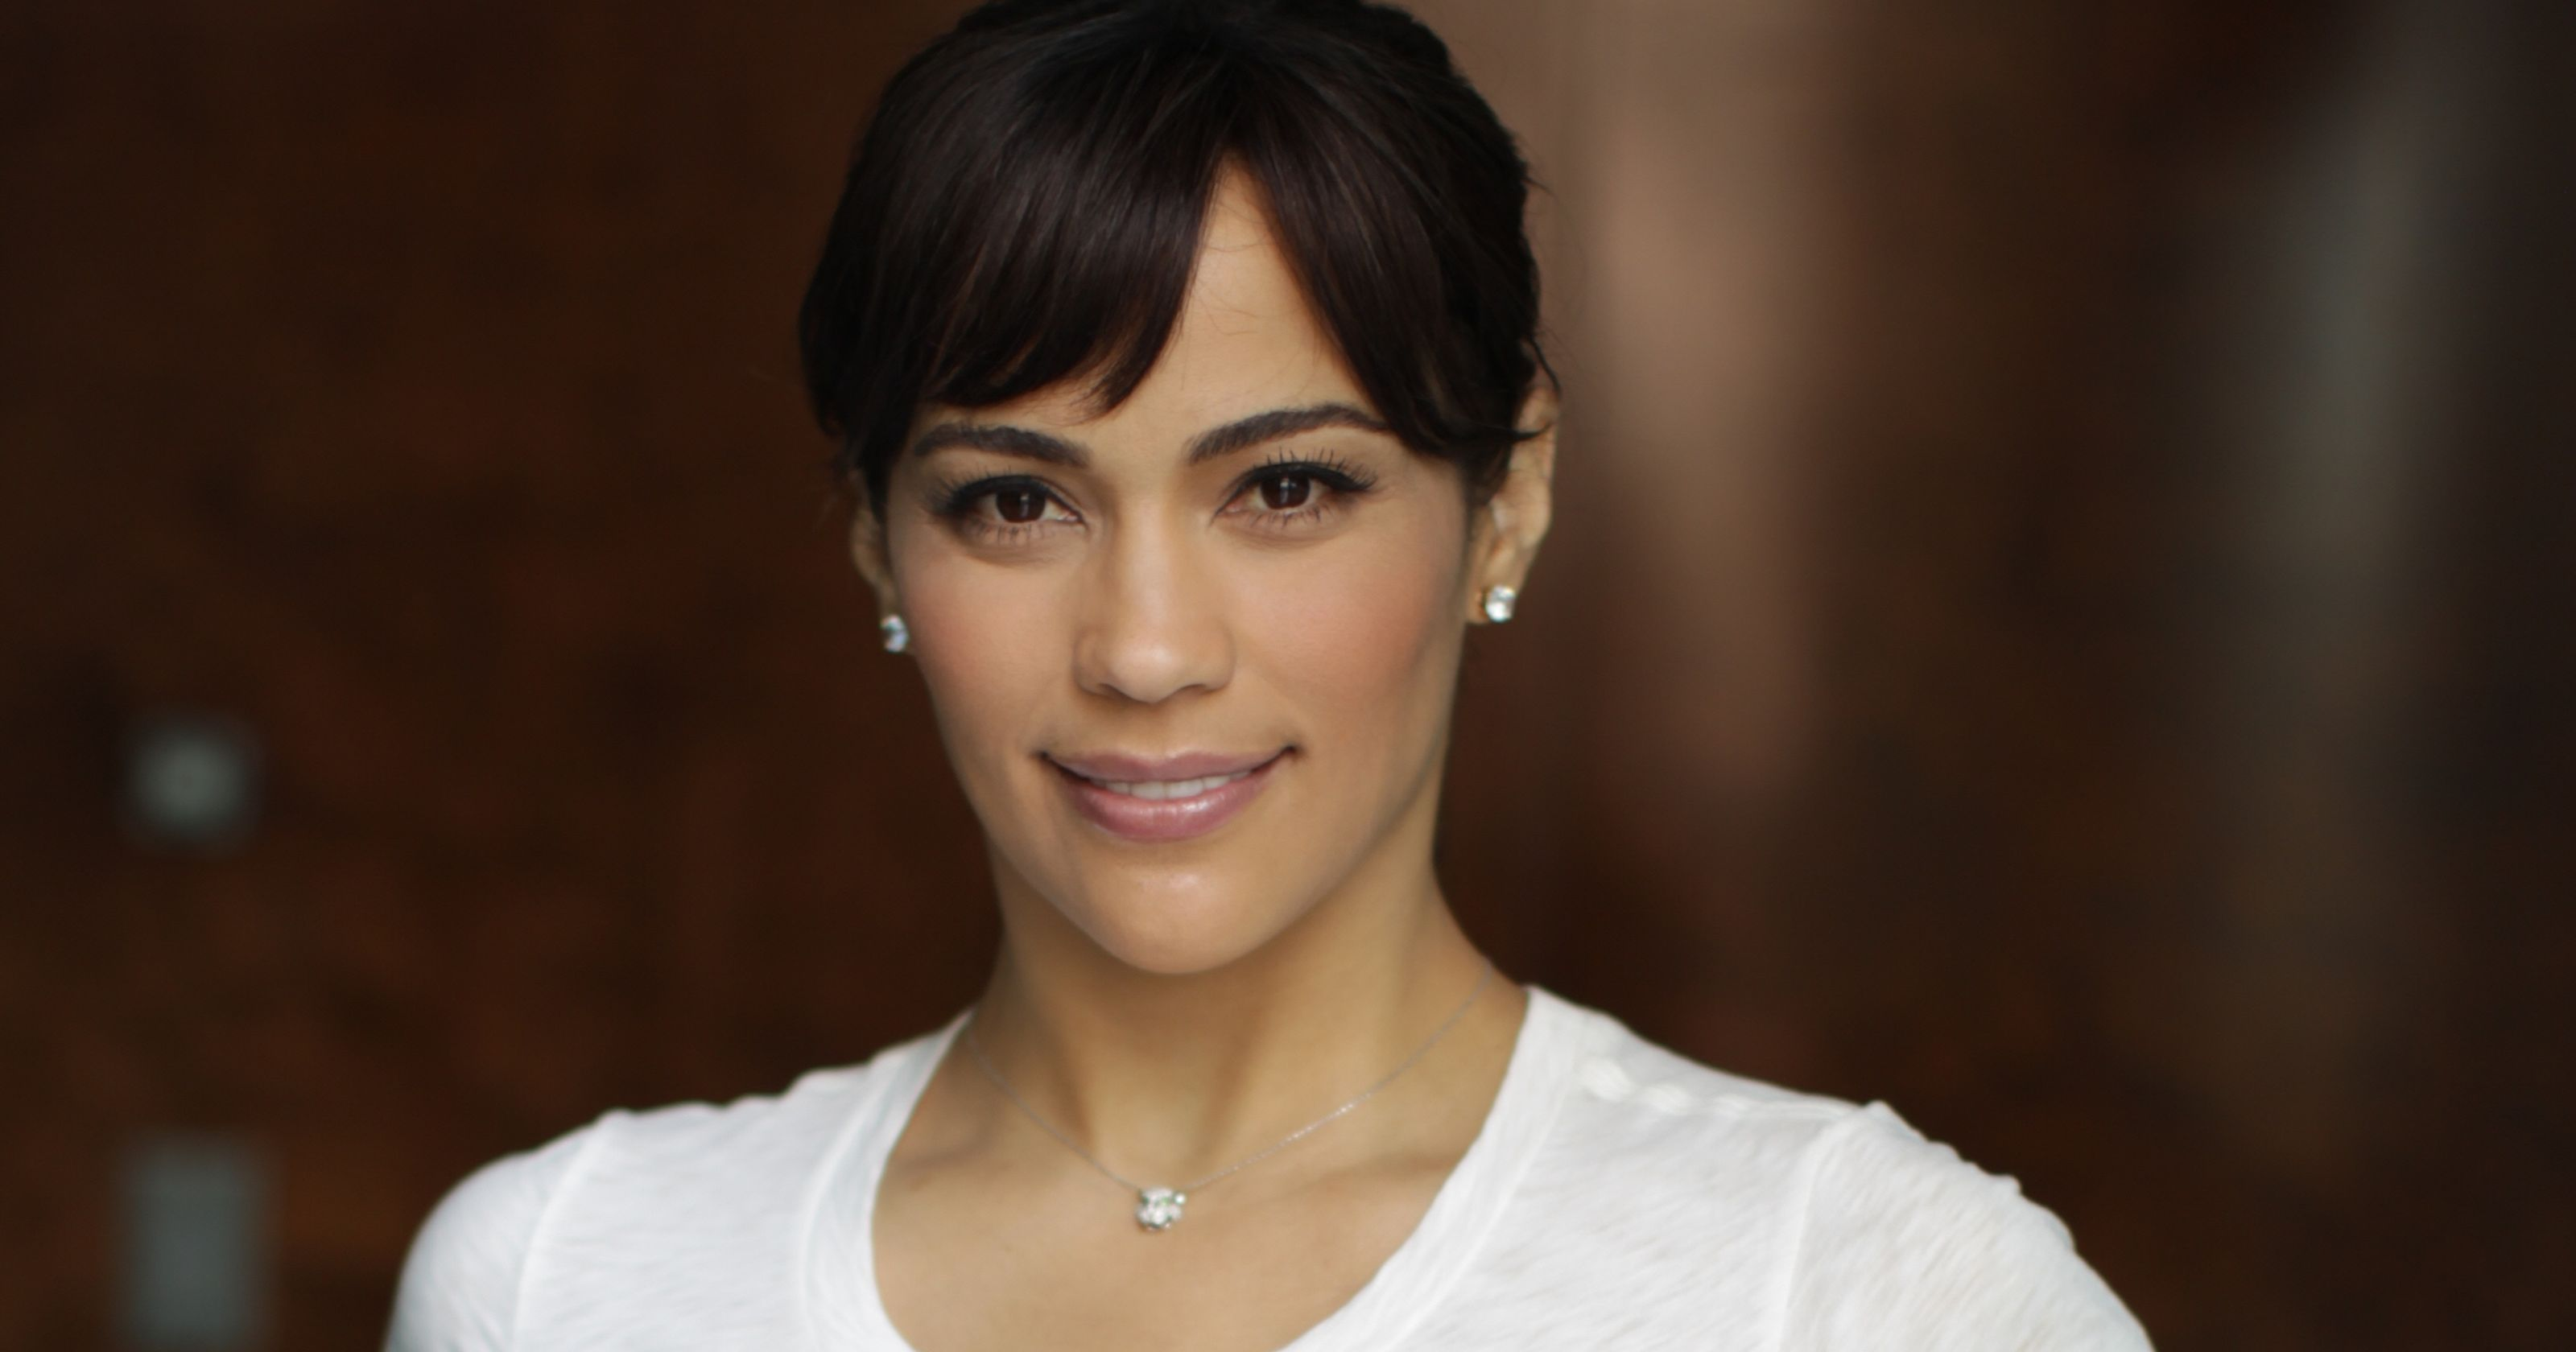 paula patton wallpapers images photos pictures backgrounds